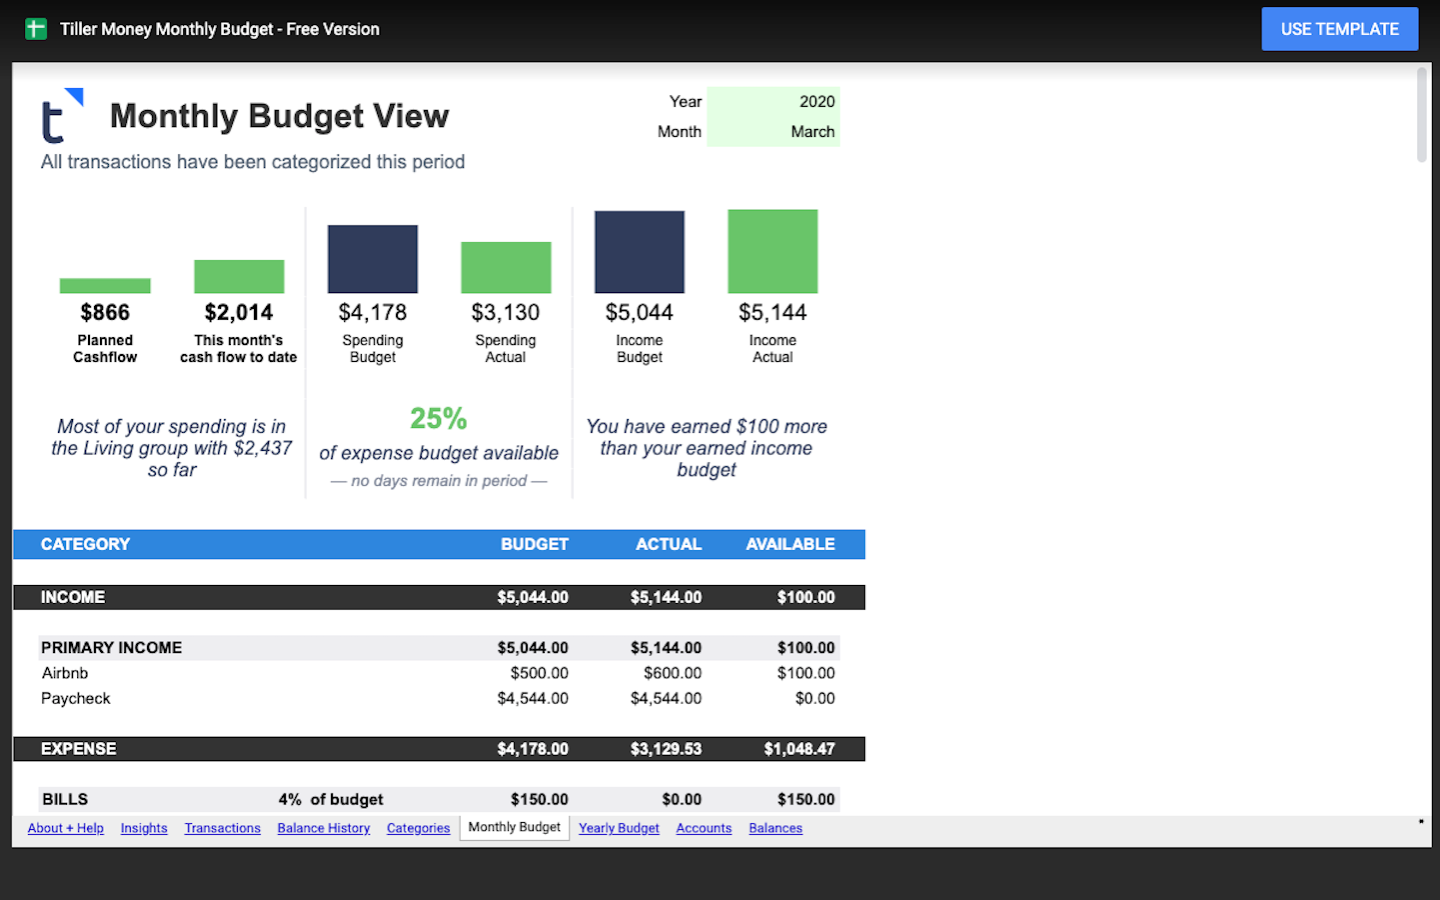 household monthly budget view